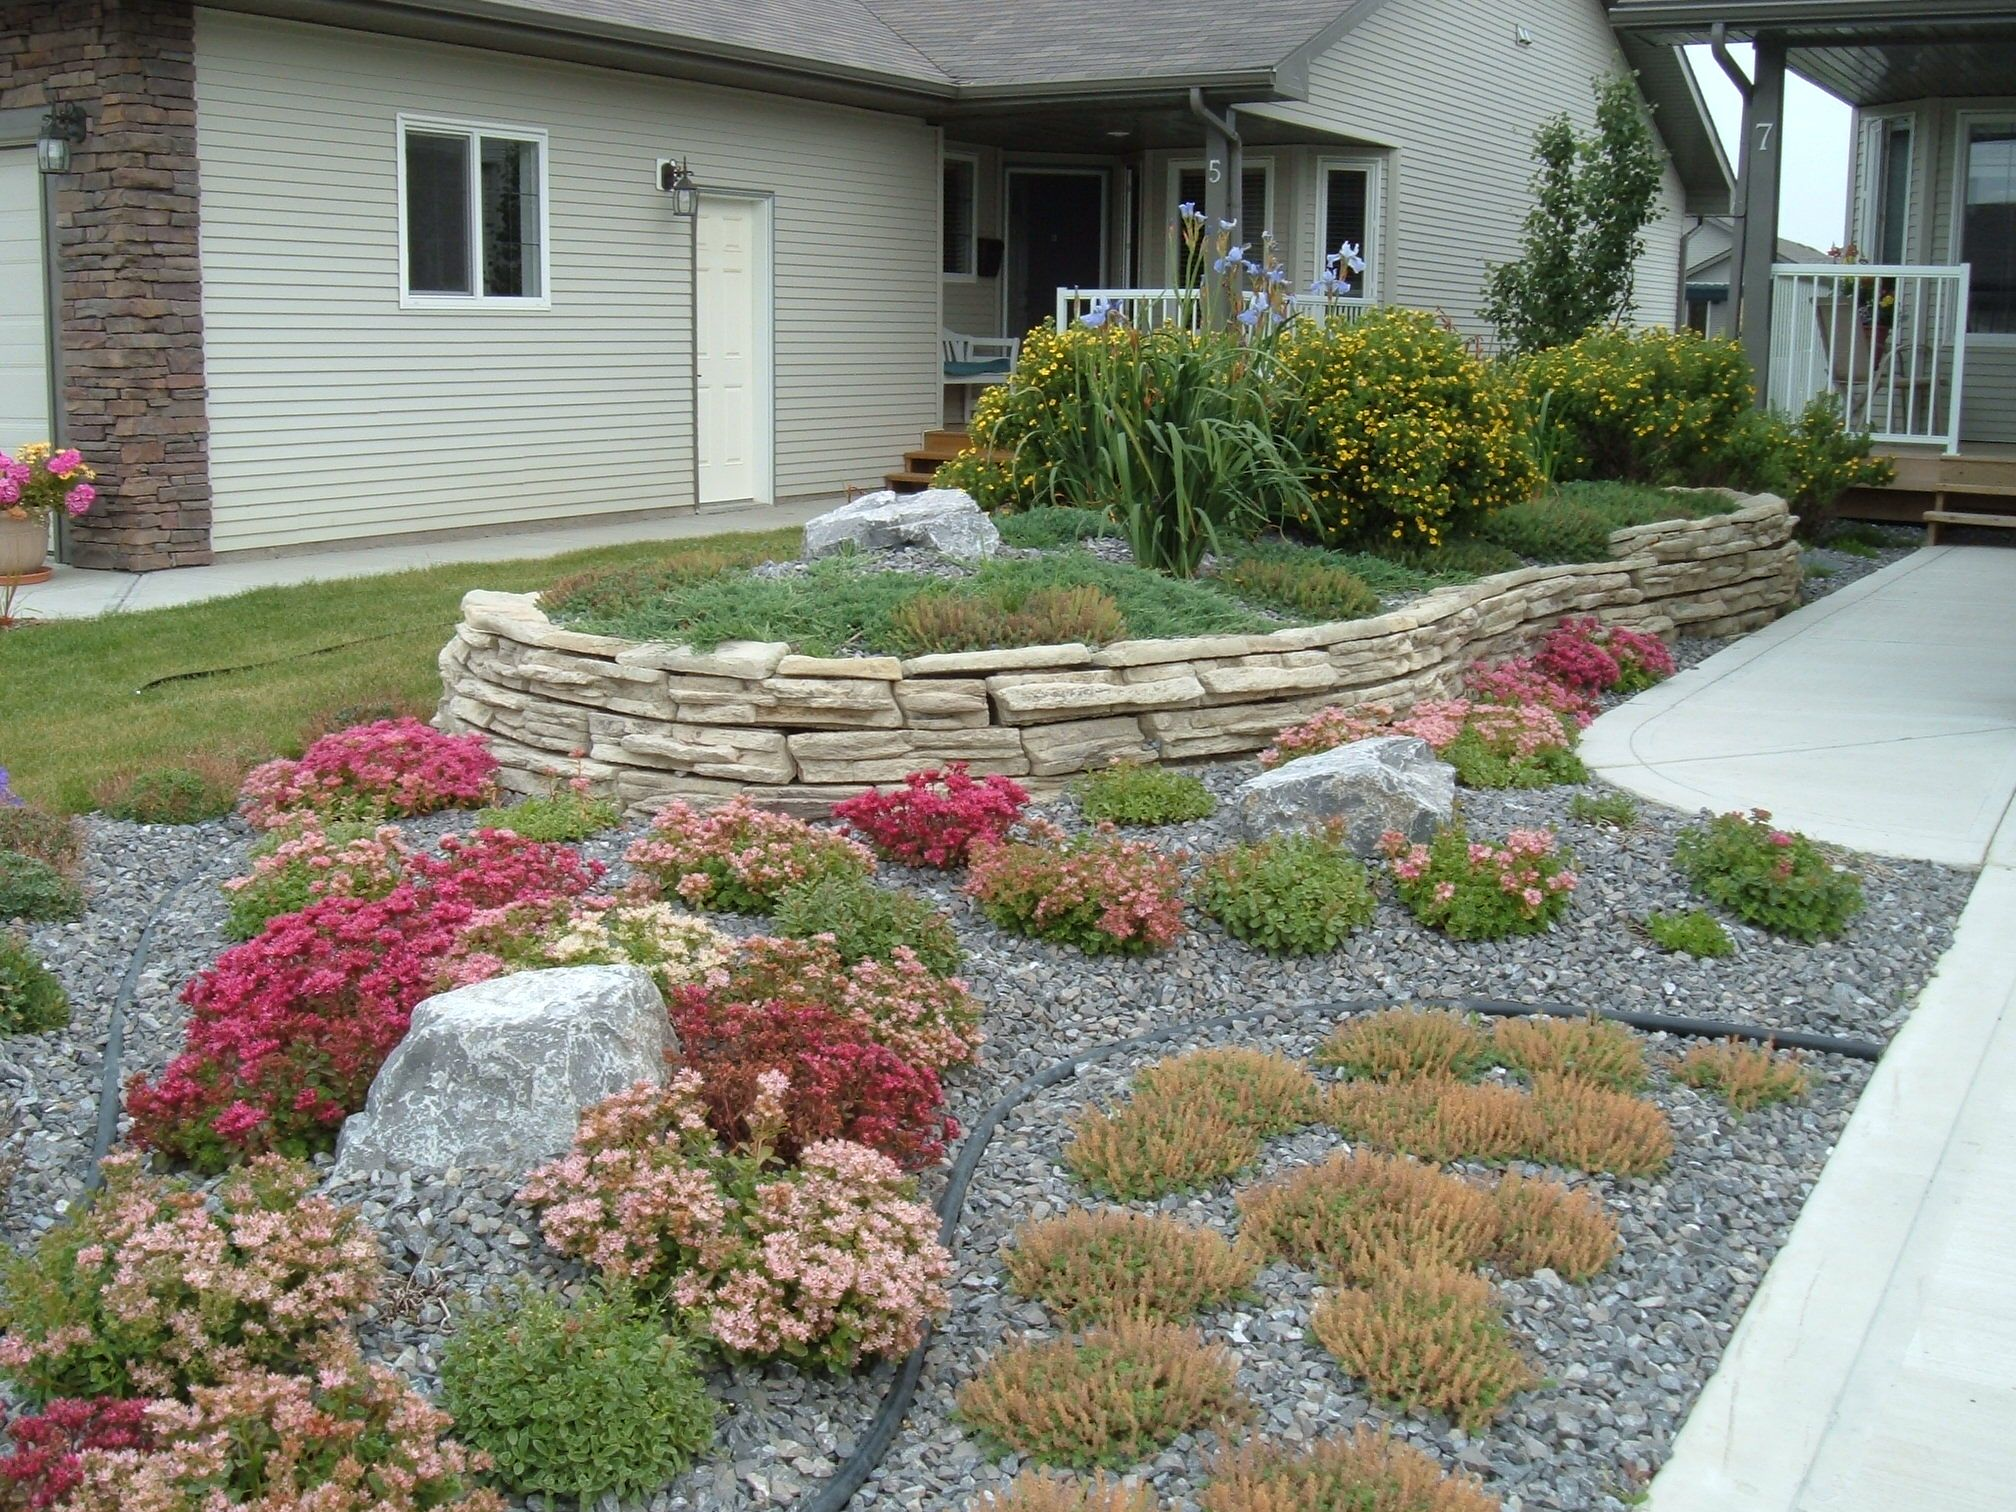 minimal maintenance landscaping a no lawn front yard with